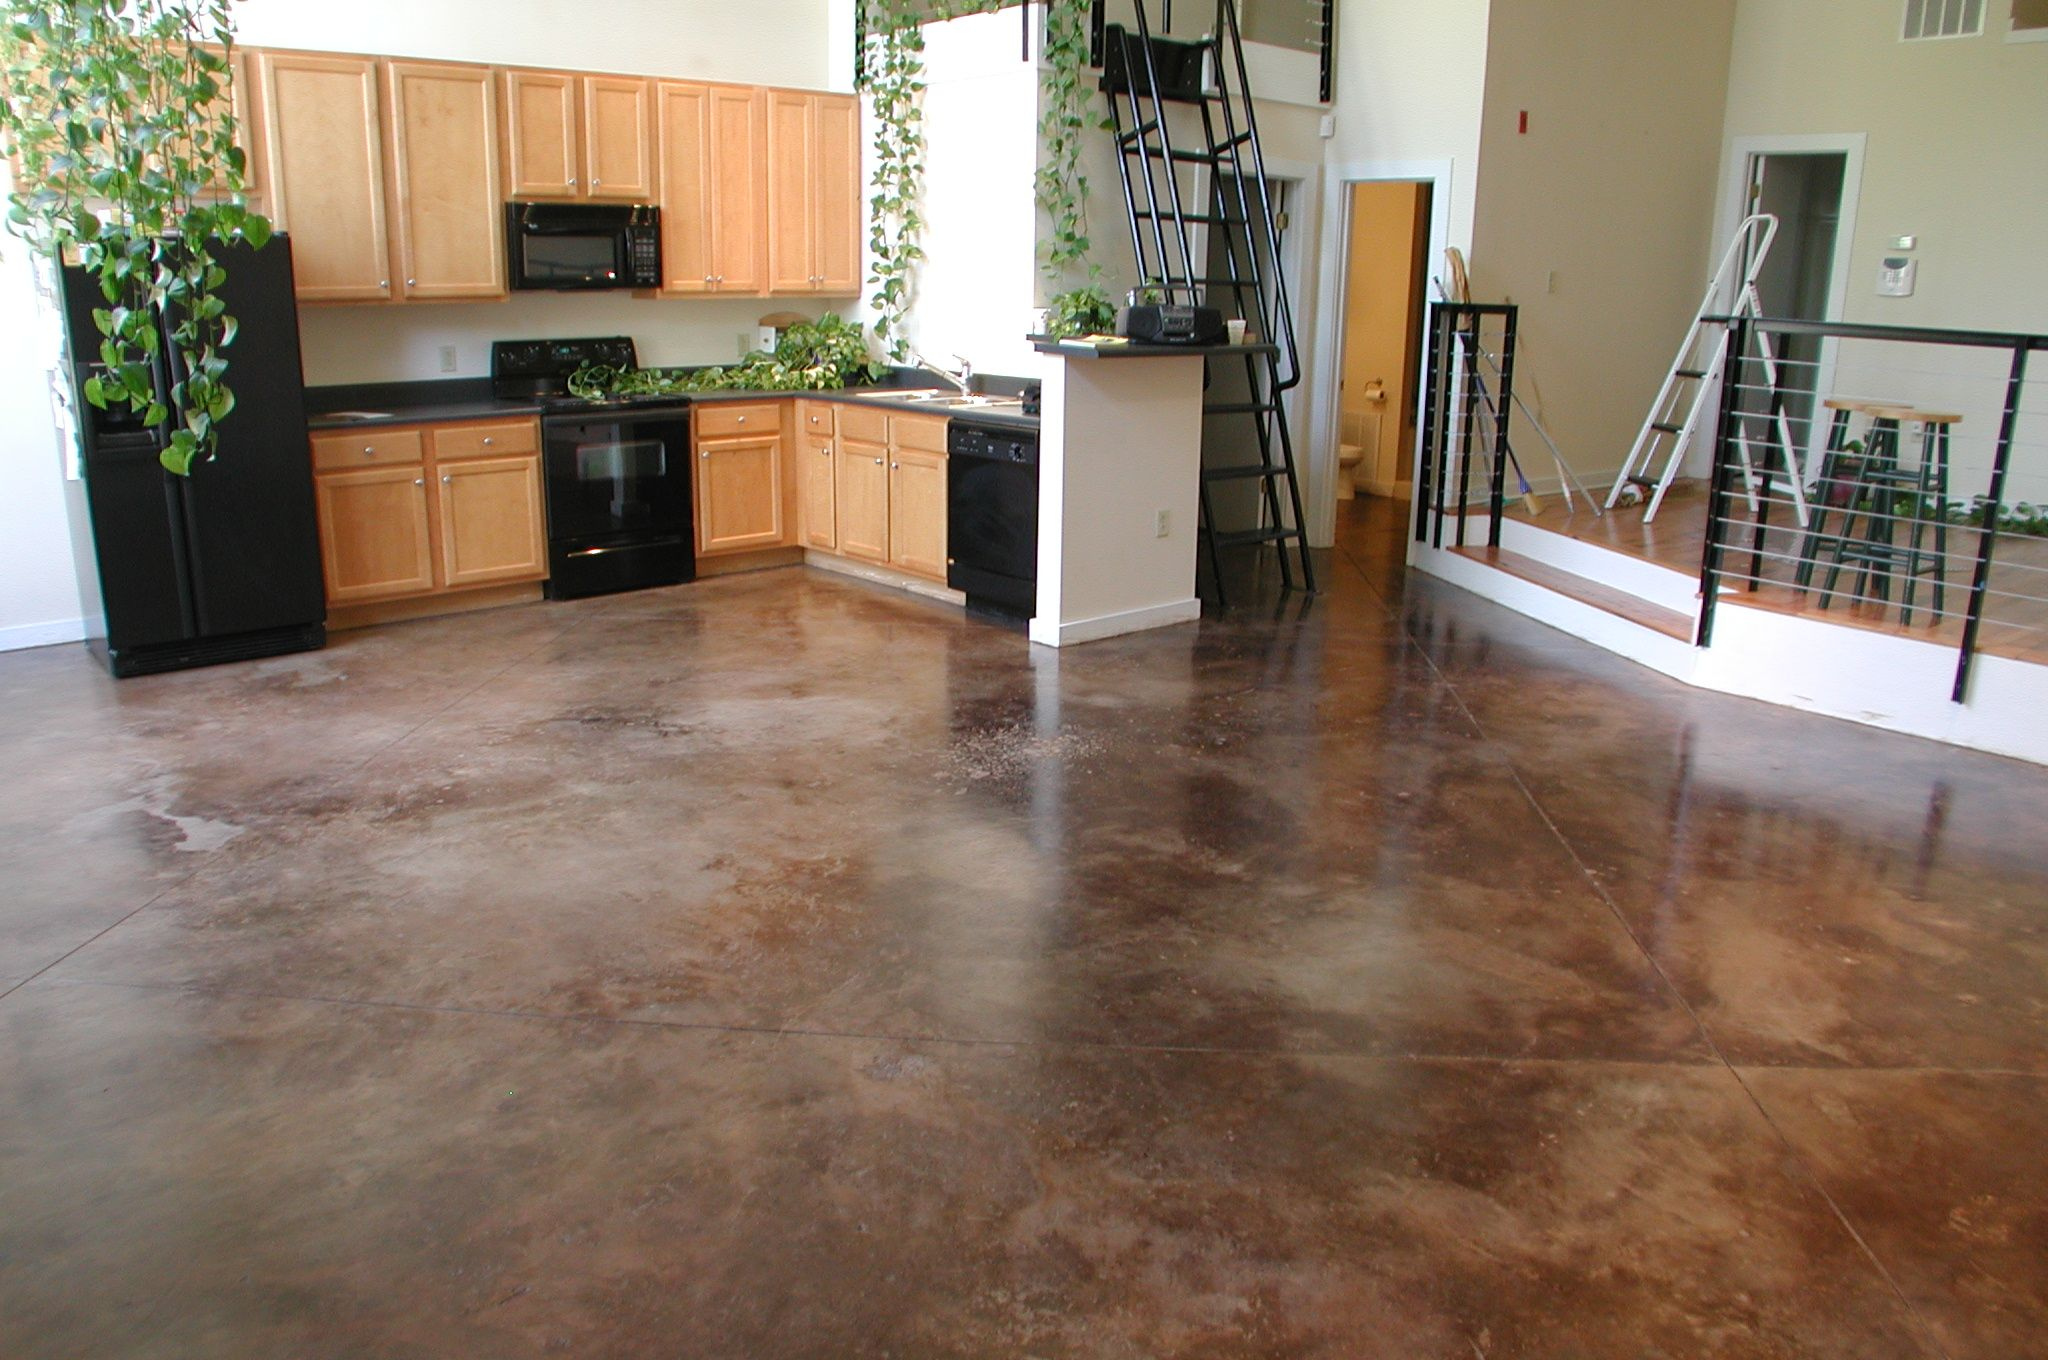 17 best images about concrete floors on pinterest decorative concrete kitchen colors and new construction - Concrete Floor Design Ideas